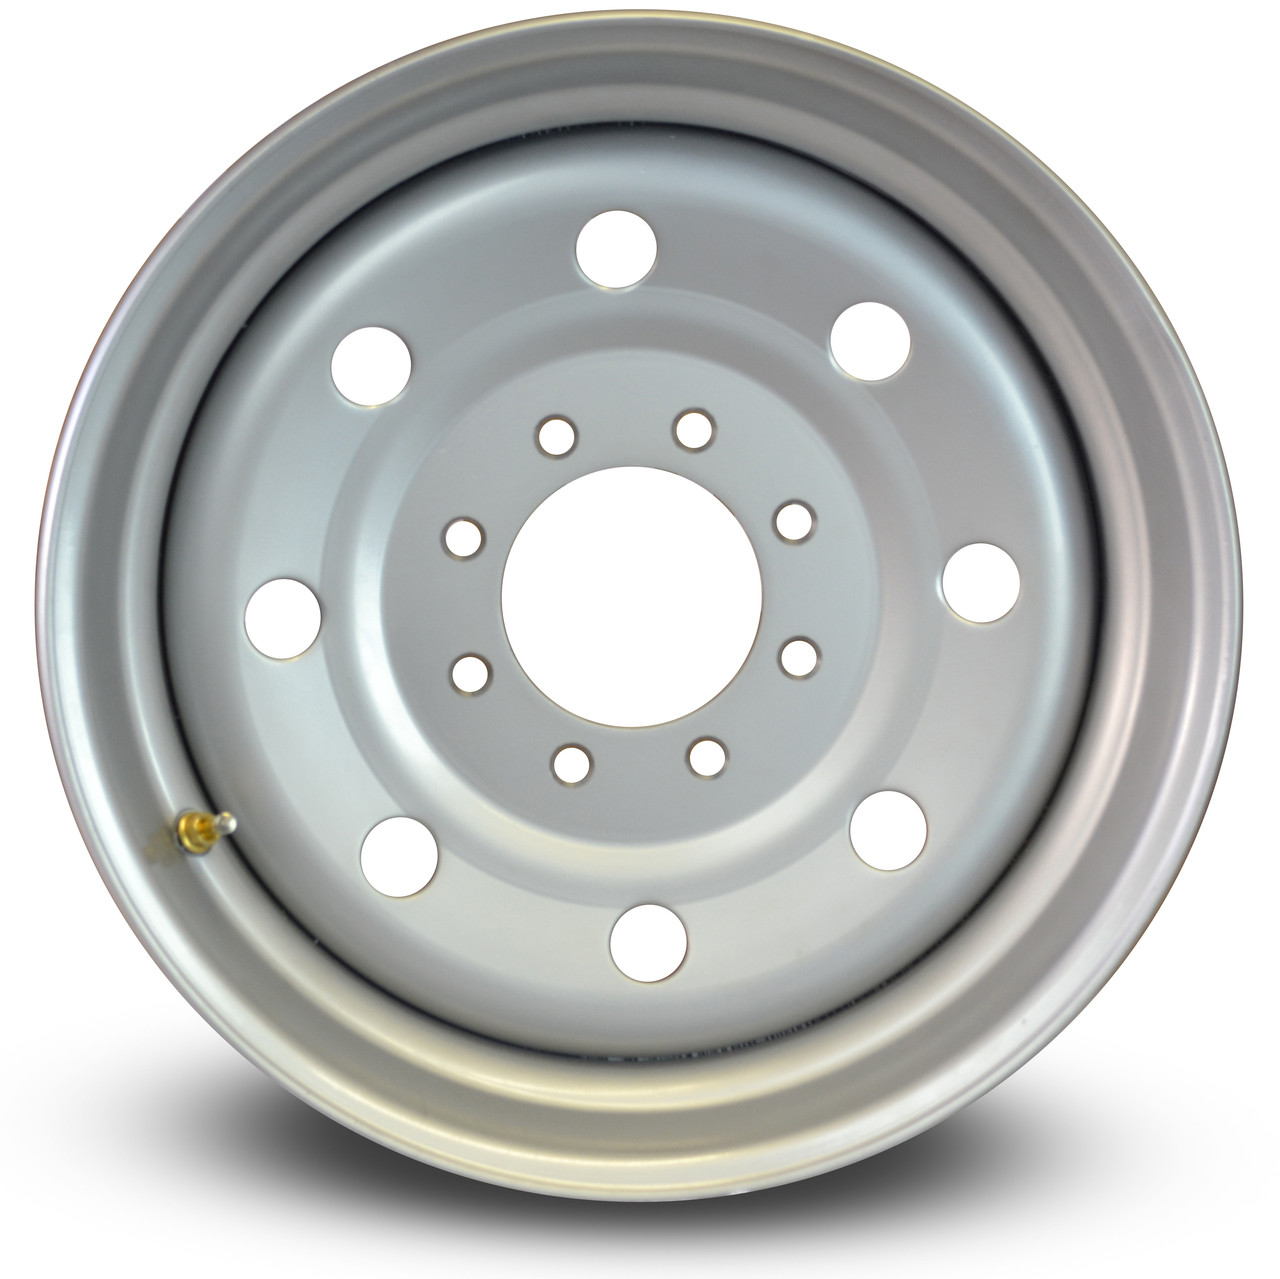 "Standard trailer 8 on 6.5"" bolt pattern."